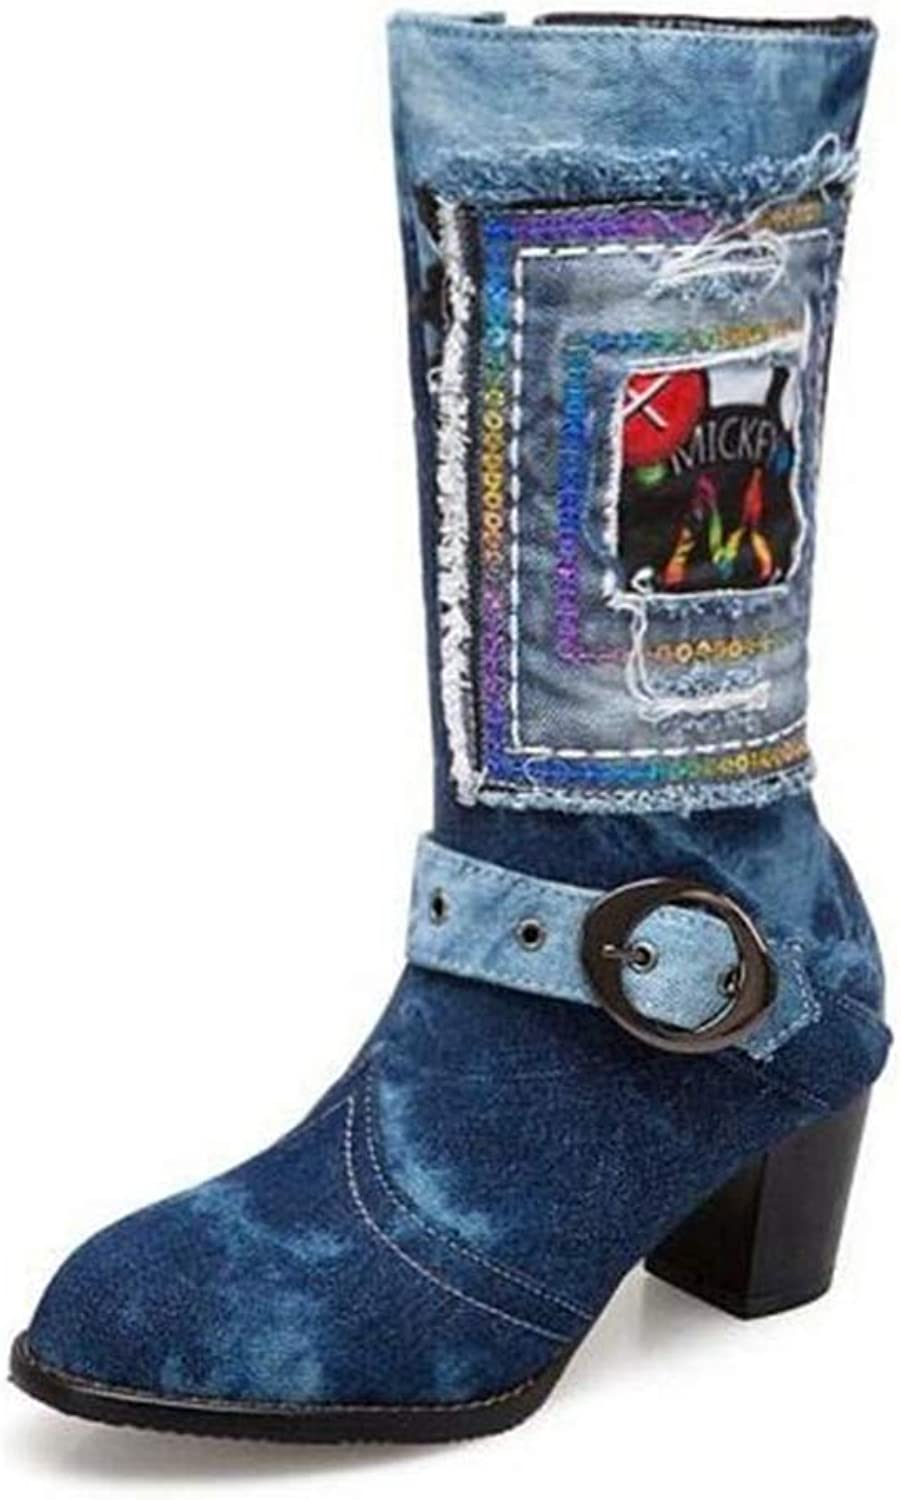 T-JULY Fashion Women High Heel Casual Boots Soft Ladies Mid Calf Jeans Denim Boots Side Zipper Round Toe Retro Woman shoes